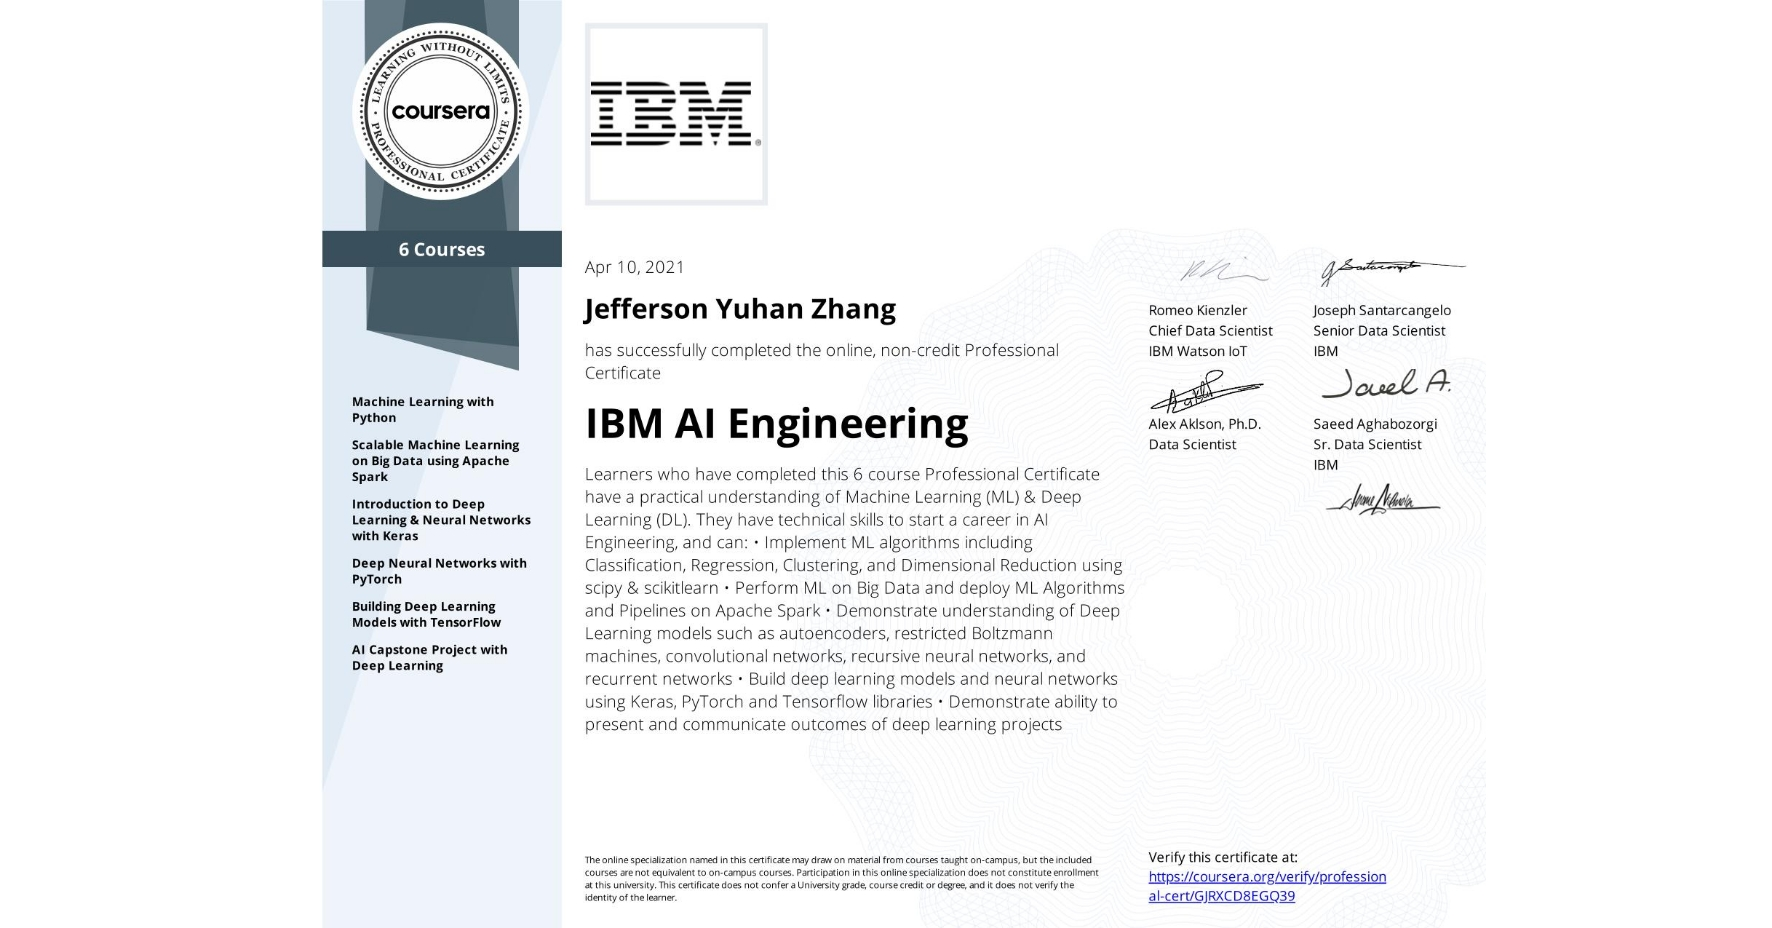 View certificate for Jefferson Yuhan Zhang, IBM AI Engineering, offered through Coursera. Learners who have completed this 6 course Professional Certificate have a practical understanding of Machine Learning (ML) & Deep Learning (DL). They have technical skills to start a career in AI Engineering, and can: •Implement ML algorithms including Classification, Regression, Clustering, and Dimensional Reduction using scipy & scikitlearn •Perform ML on Big Data and deploy ML Algorithms and Pipelines on Apache Spark •Demonstrate understanding of Deep Learning models such as autoencoders, restricted Boltzmann machines,  convolutional networks, recursive neural networks, and recurrent networks •Build deep learning models and neural networks using Keras, PyTorch and Tensorflow libraries •Demonstrate ability to present and communicate outcomes of deep learning projects